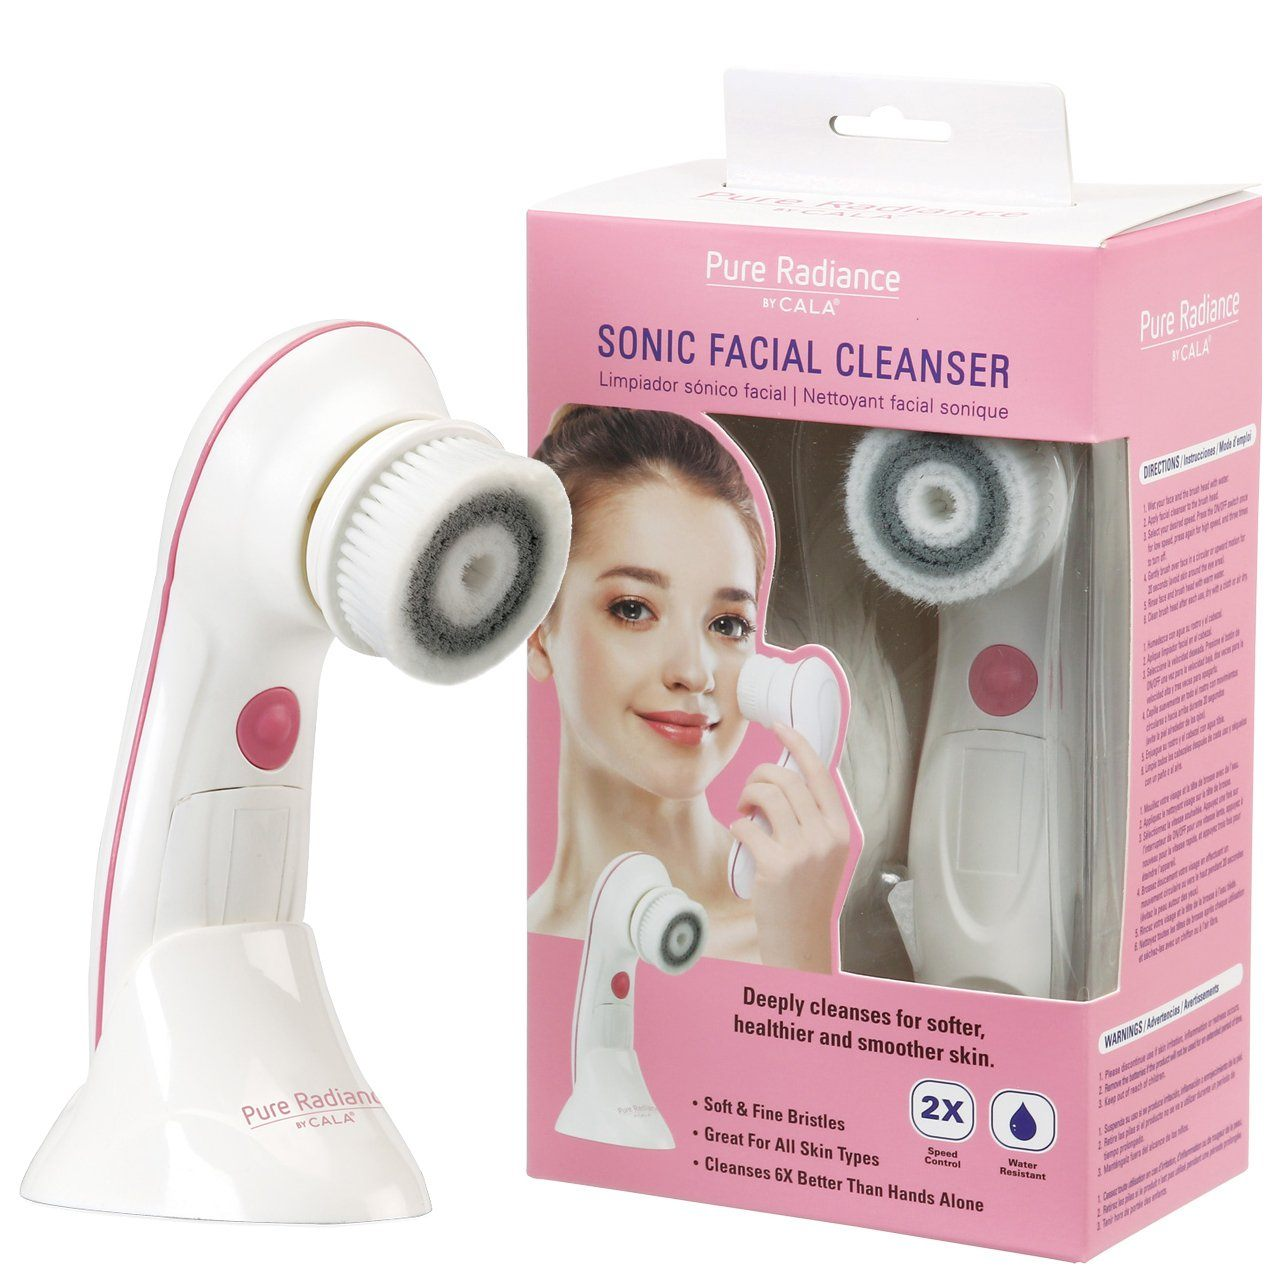 Cala Sonic Facial Cleanser #67502 (PC)